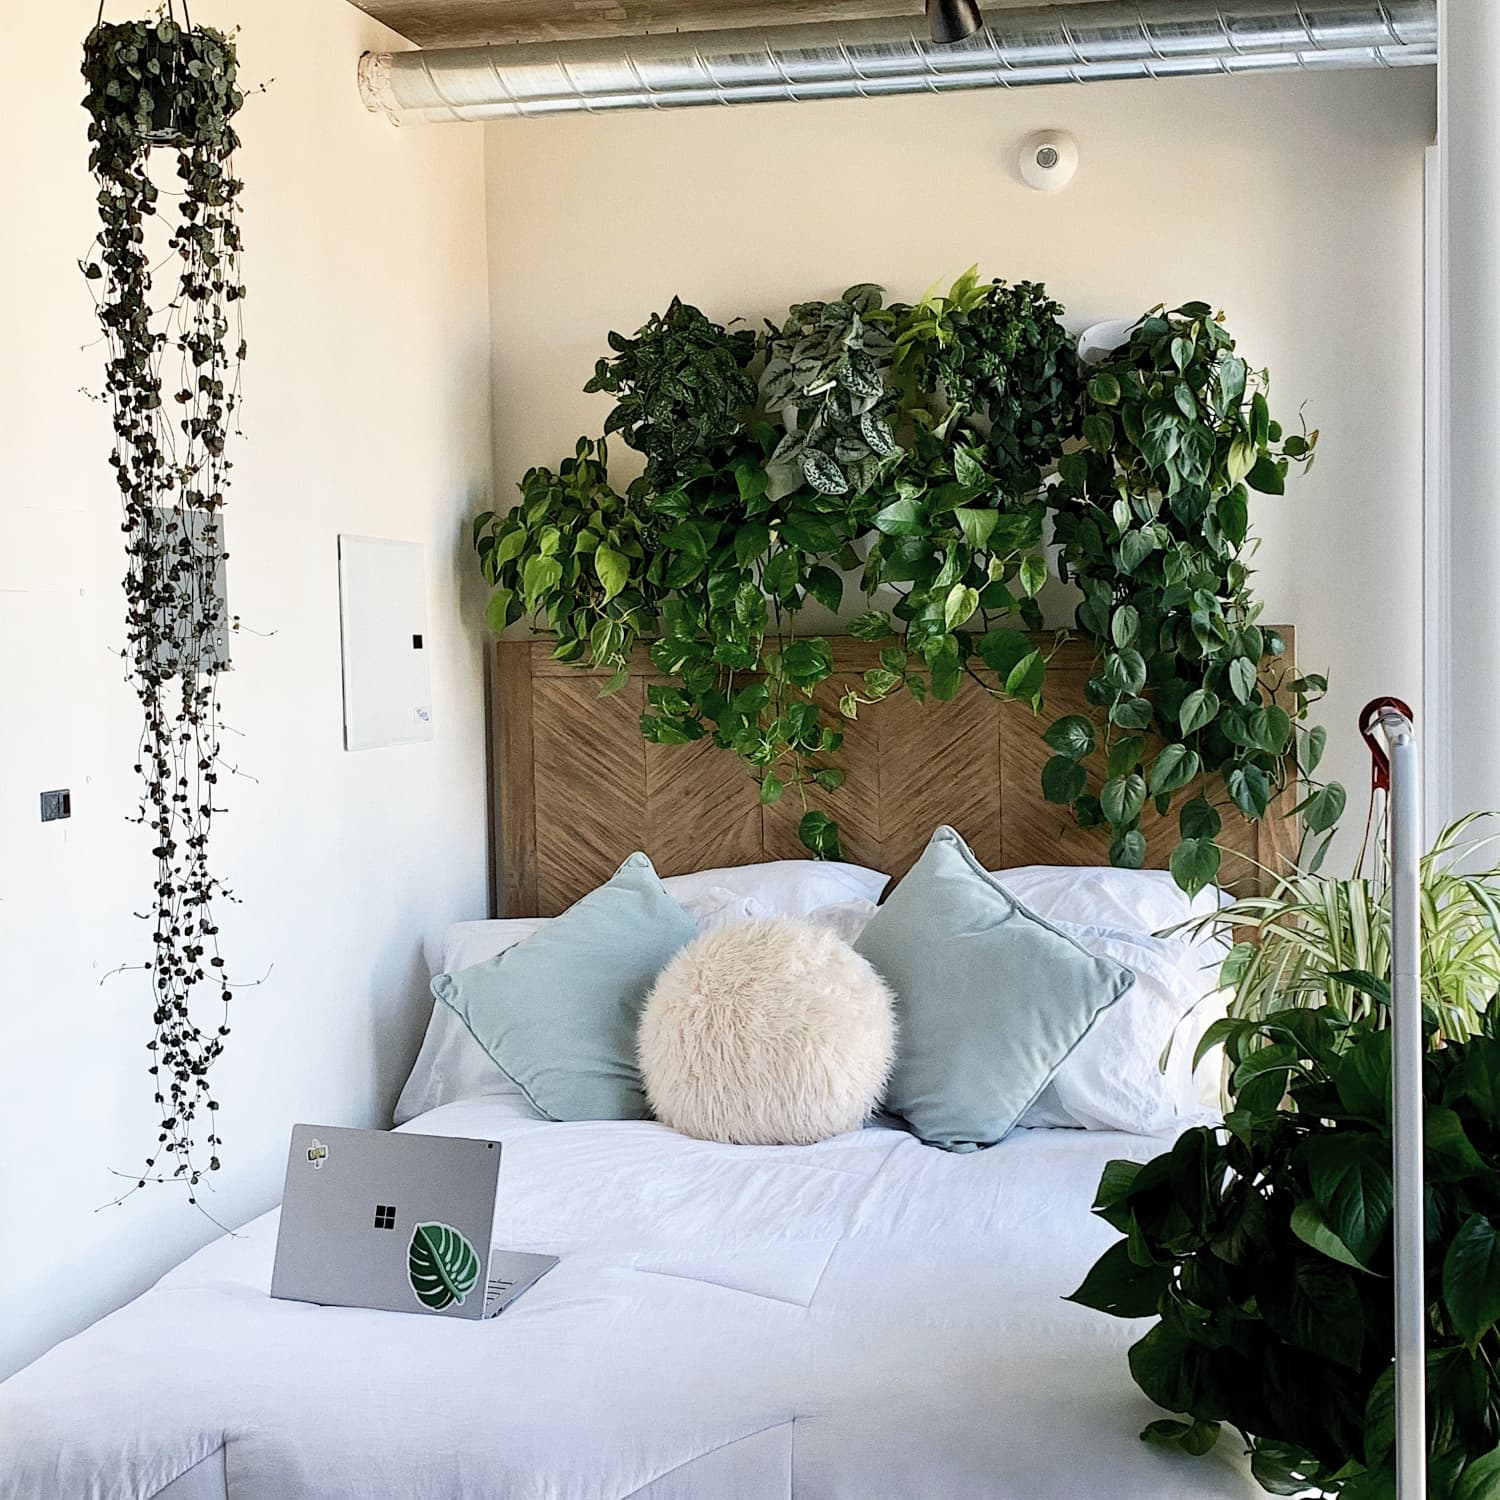 Thanks to 50+ Plants, This 400-Square-Foot Studio Apartment Is Like a Serene Urban Greenhouse